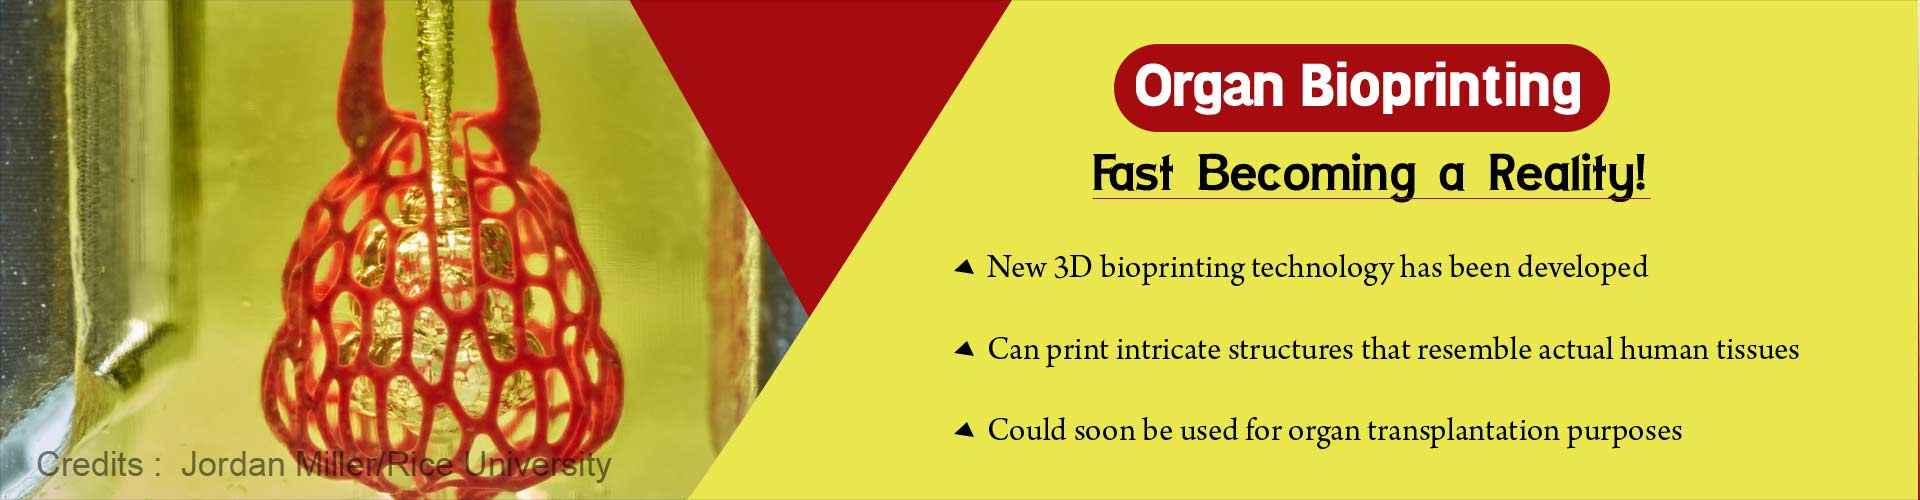 Organ bioprinting fast becoming a reality. New 3D bioprinting technology has been developed. Can print intricate structures that resemble actual human tissues. Could soon be used for organ transplantation purposes.